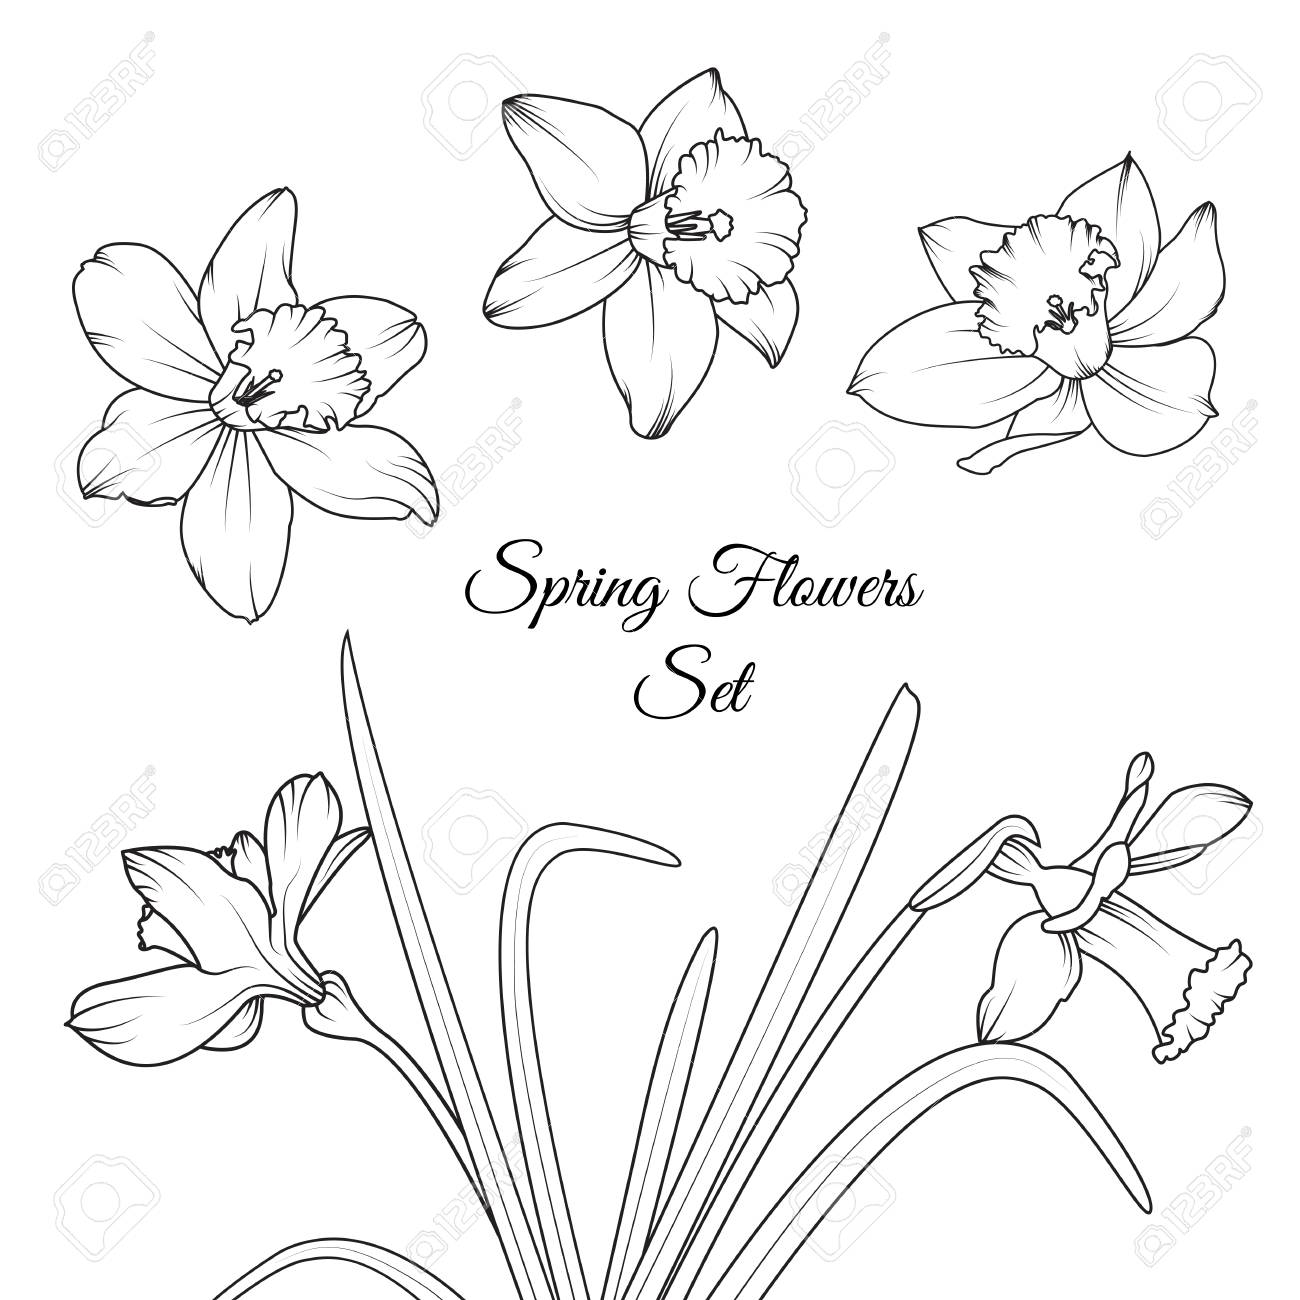 narcissus daffodil spring flowers reusable isolated elements